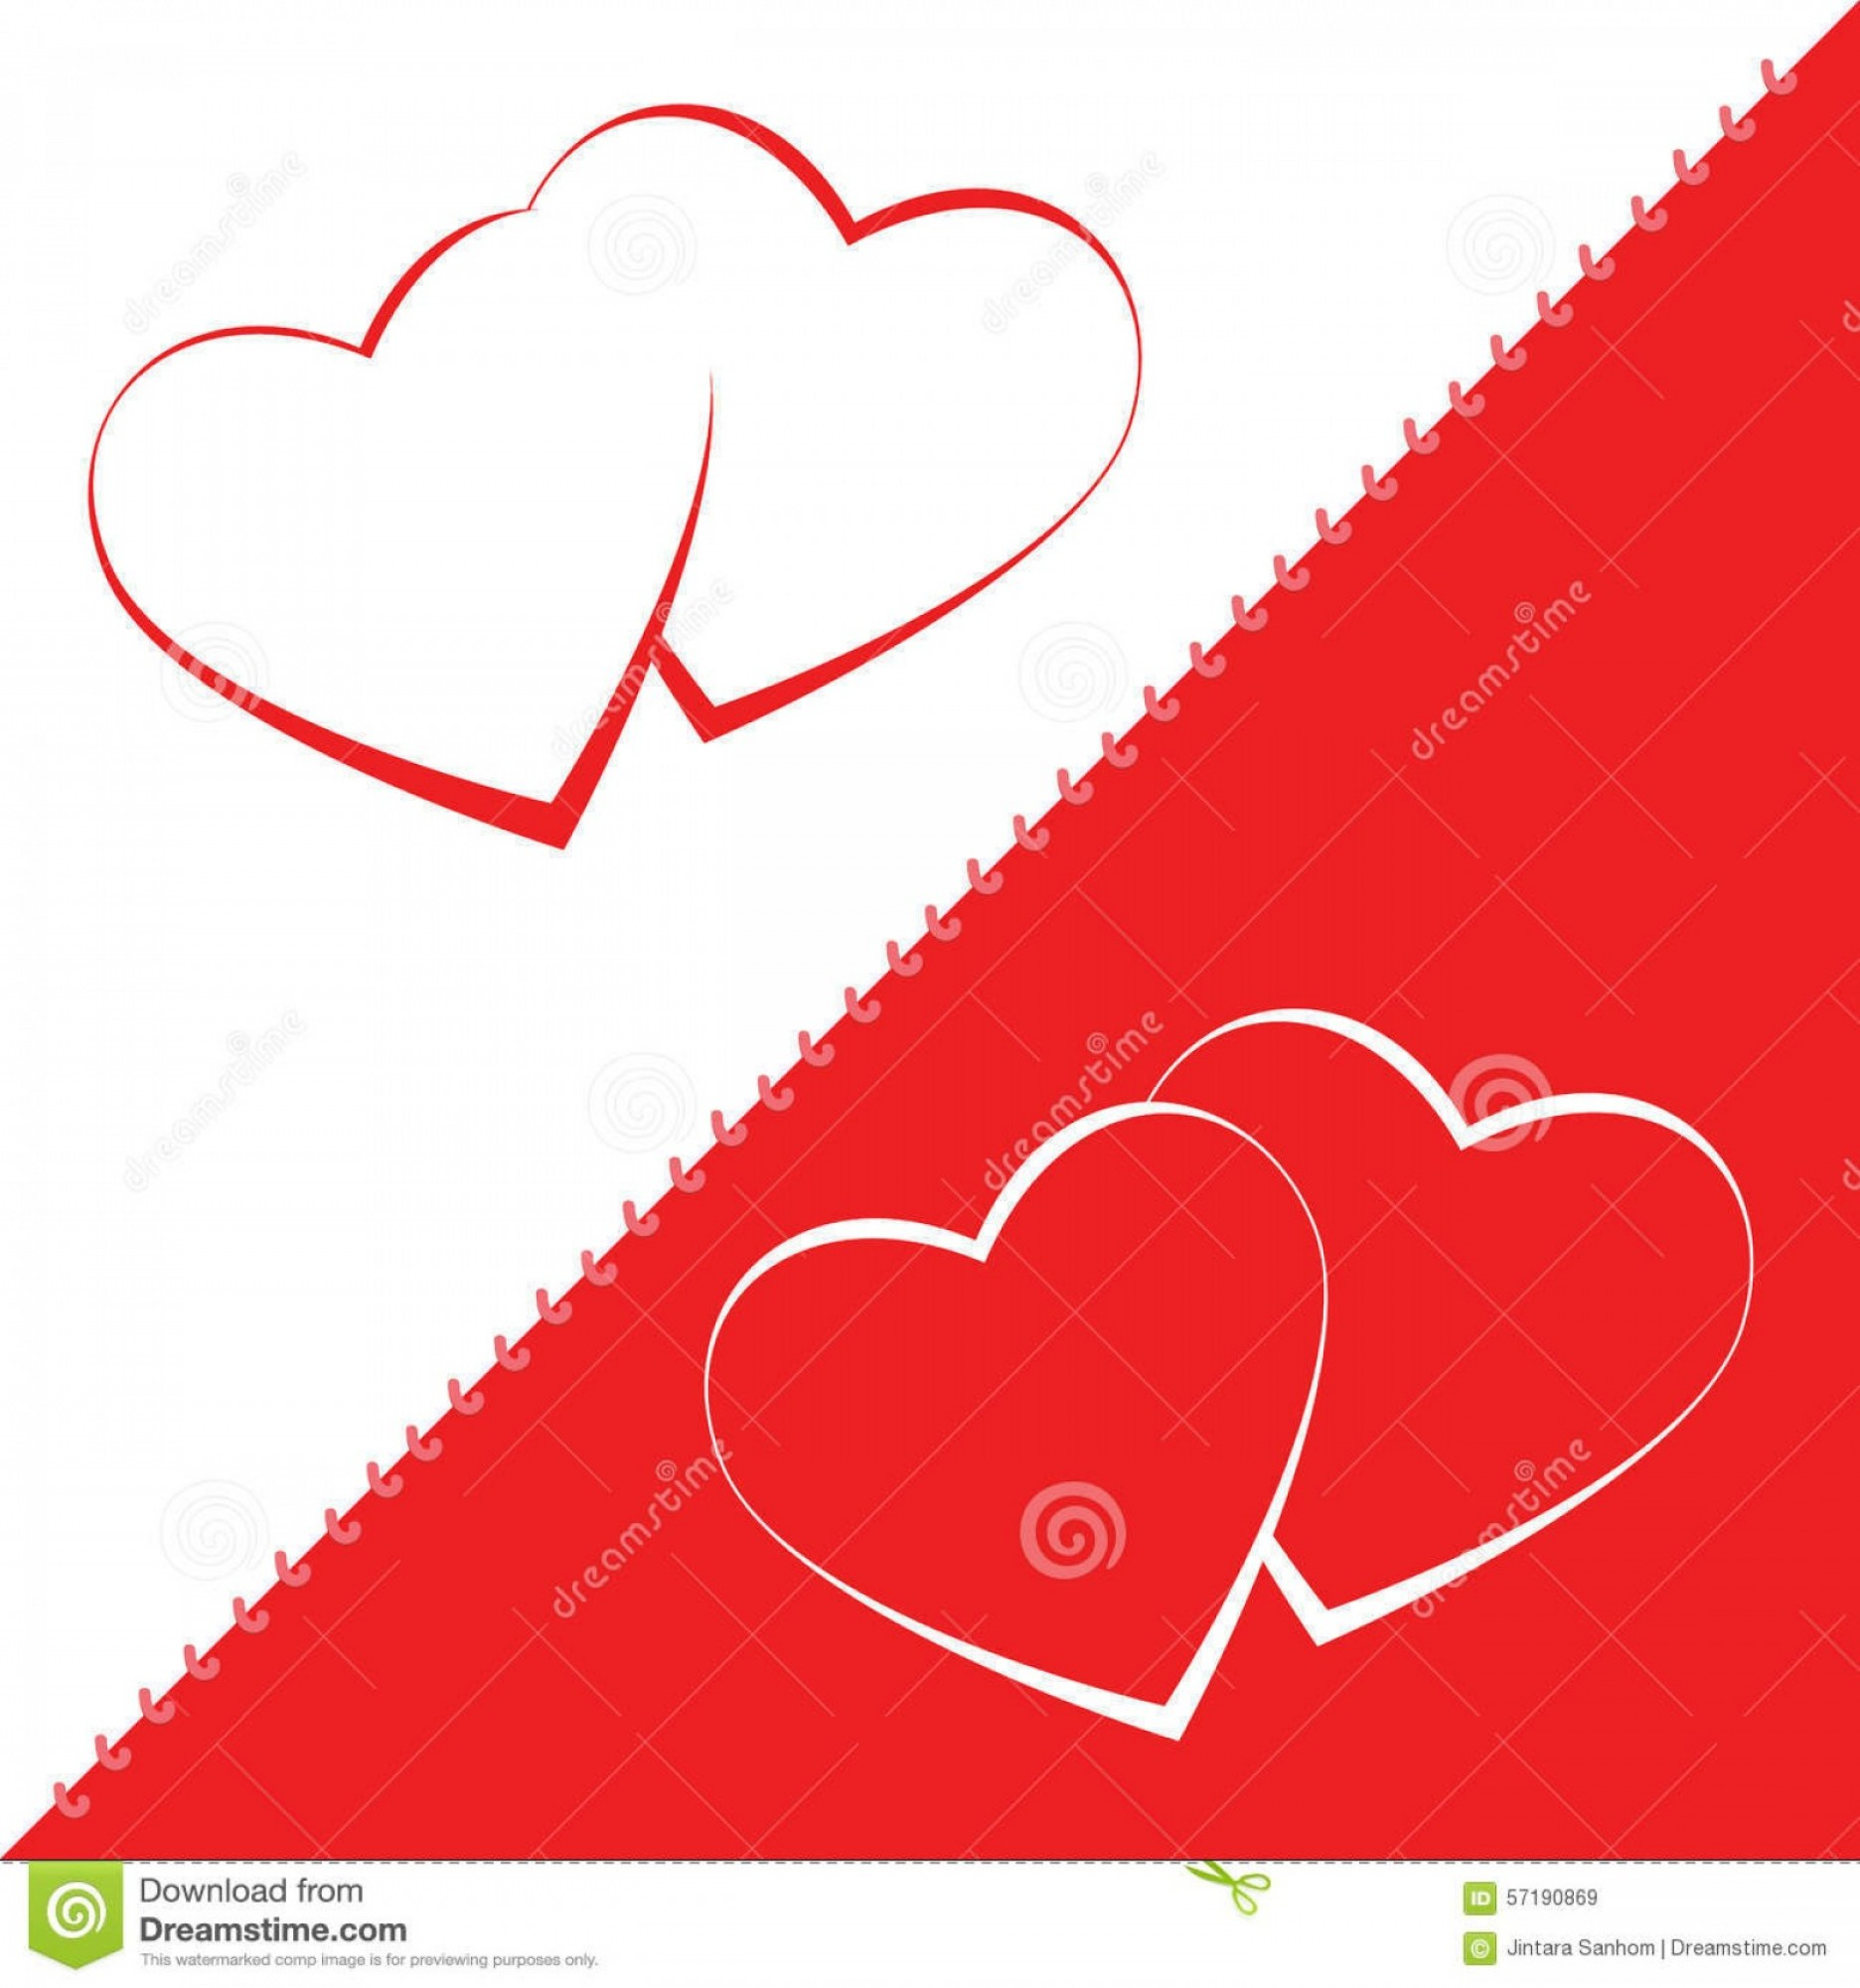 Hunting Heart Vector: Stock Illustration Heart Vector Valentine Love Background Design Lover Image